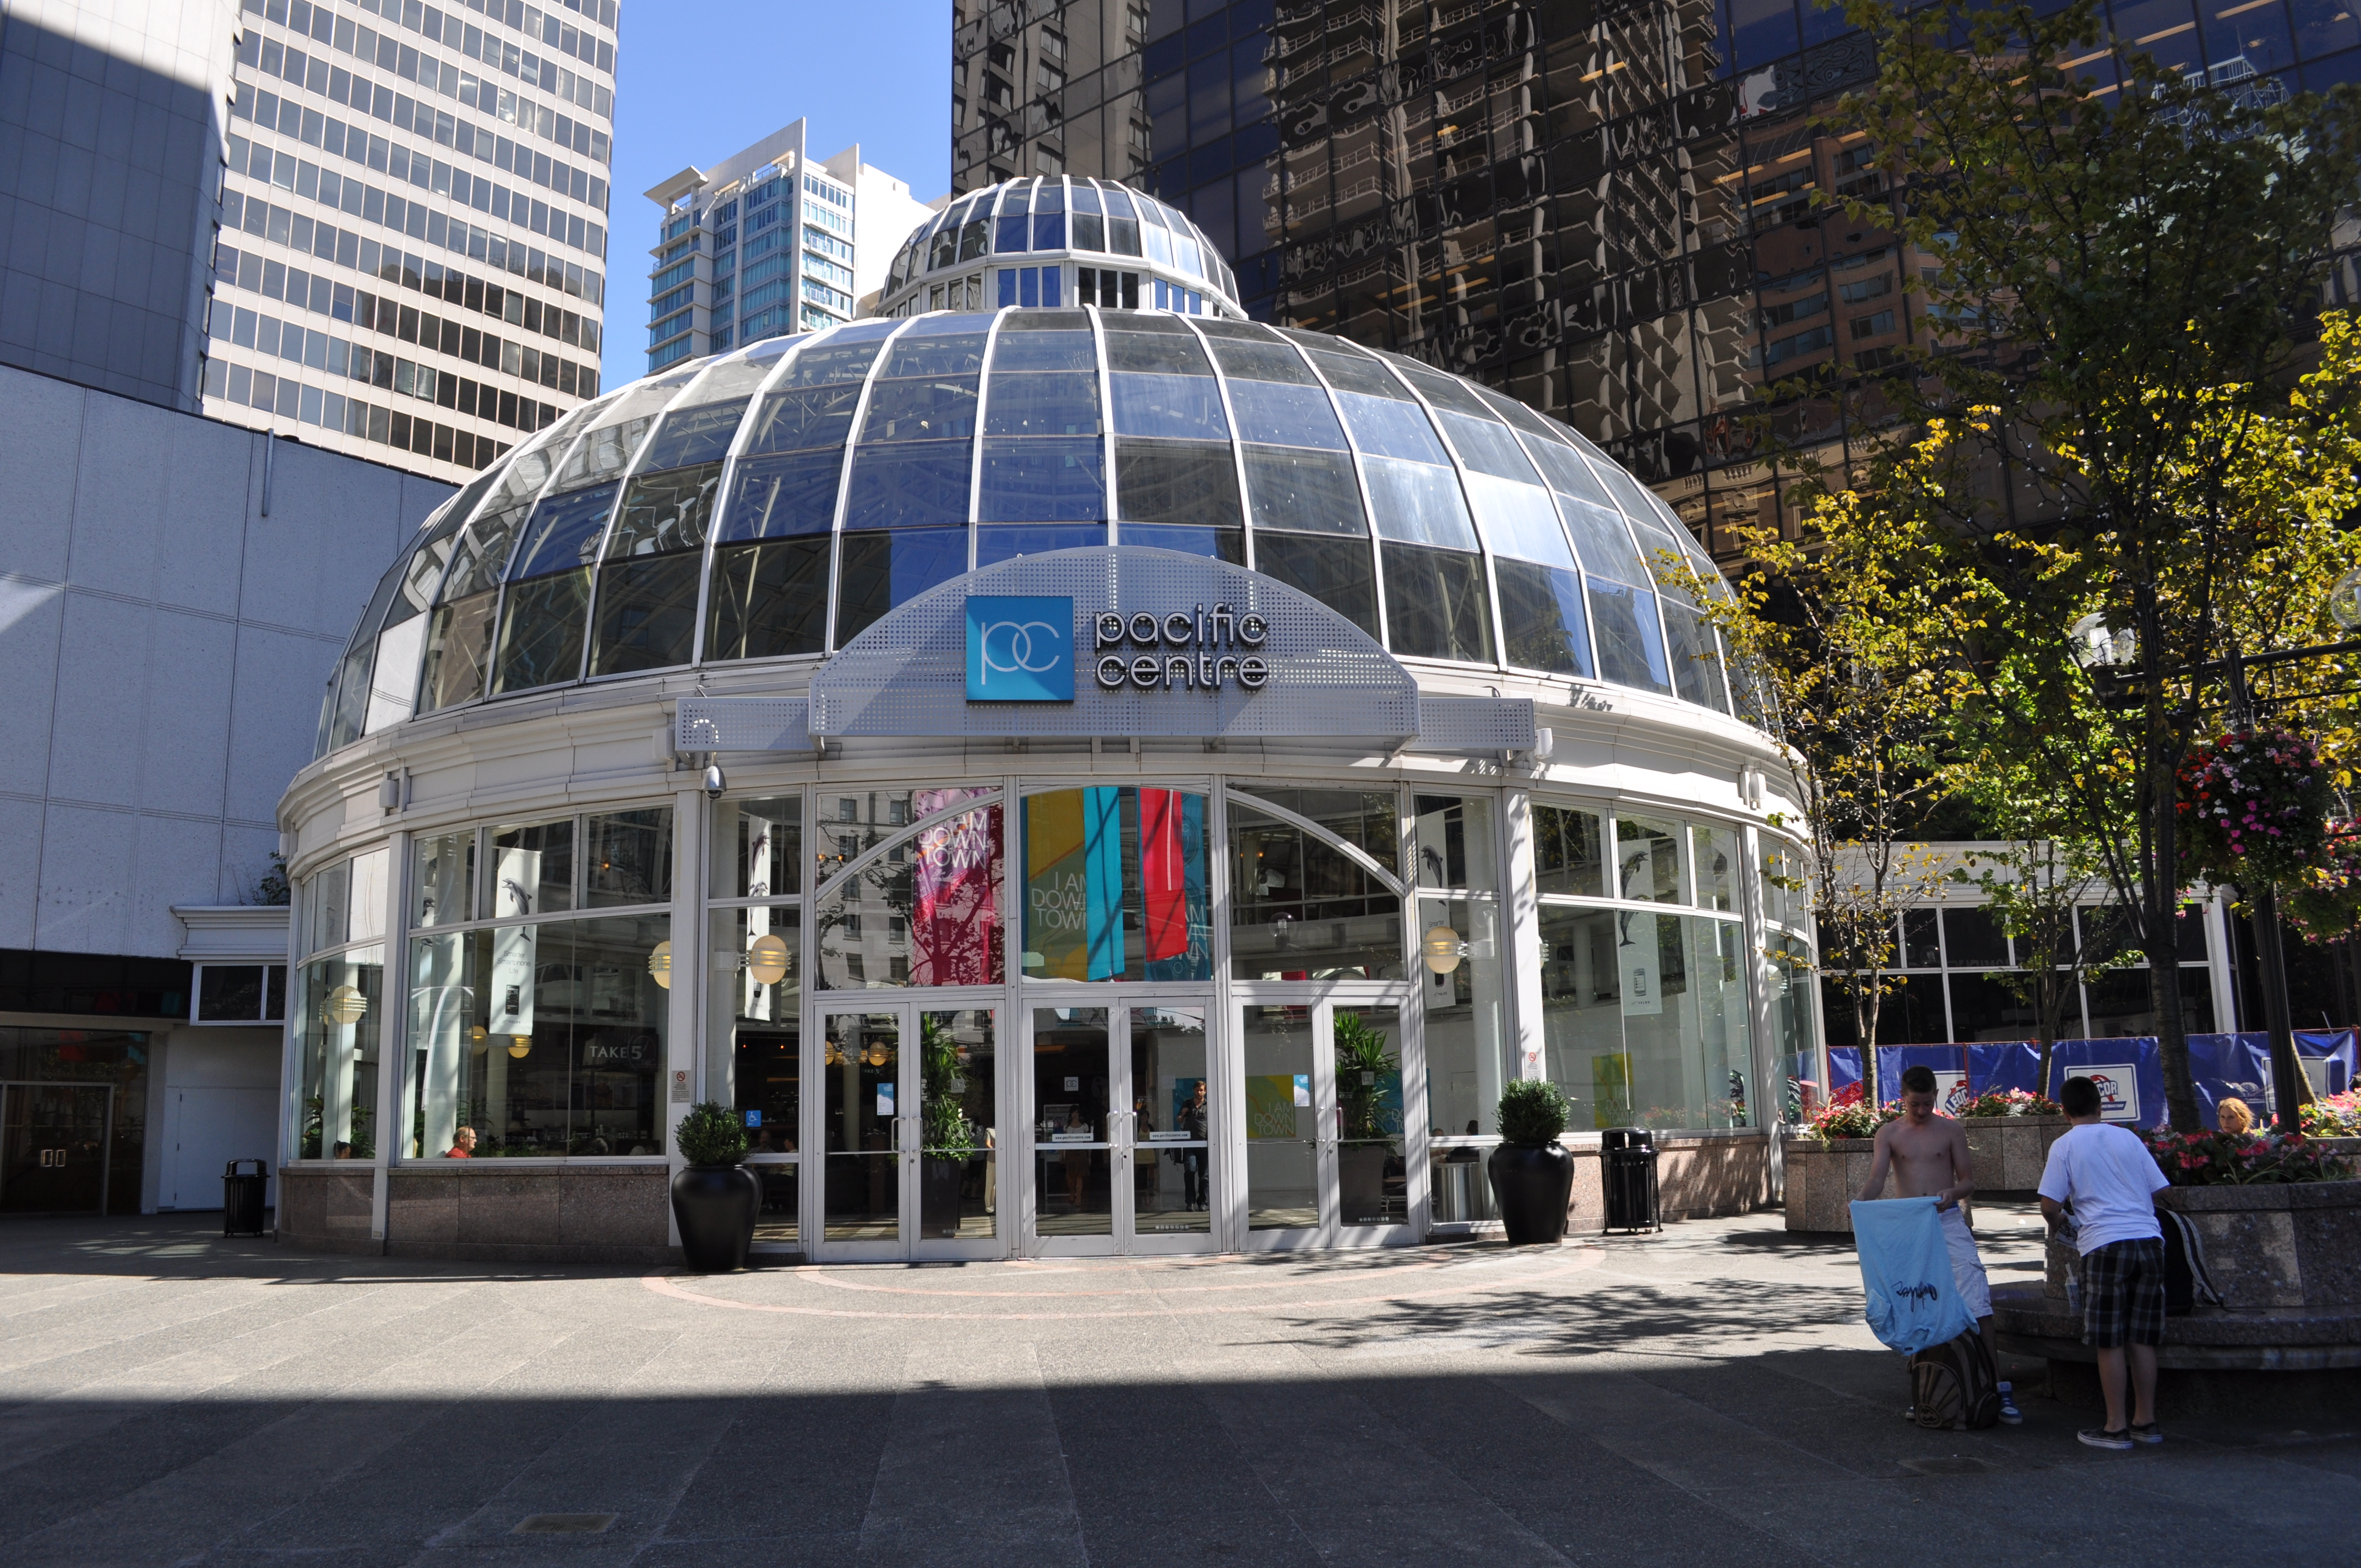 Pacific Centre Mall is directly accessible through the Canada Line skytrain and across the street from the Expo/Millennium Line skytrain.